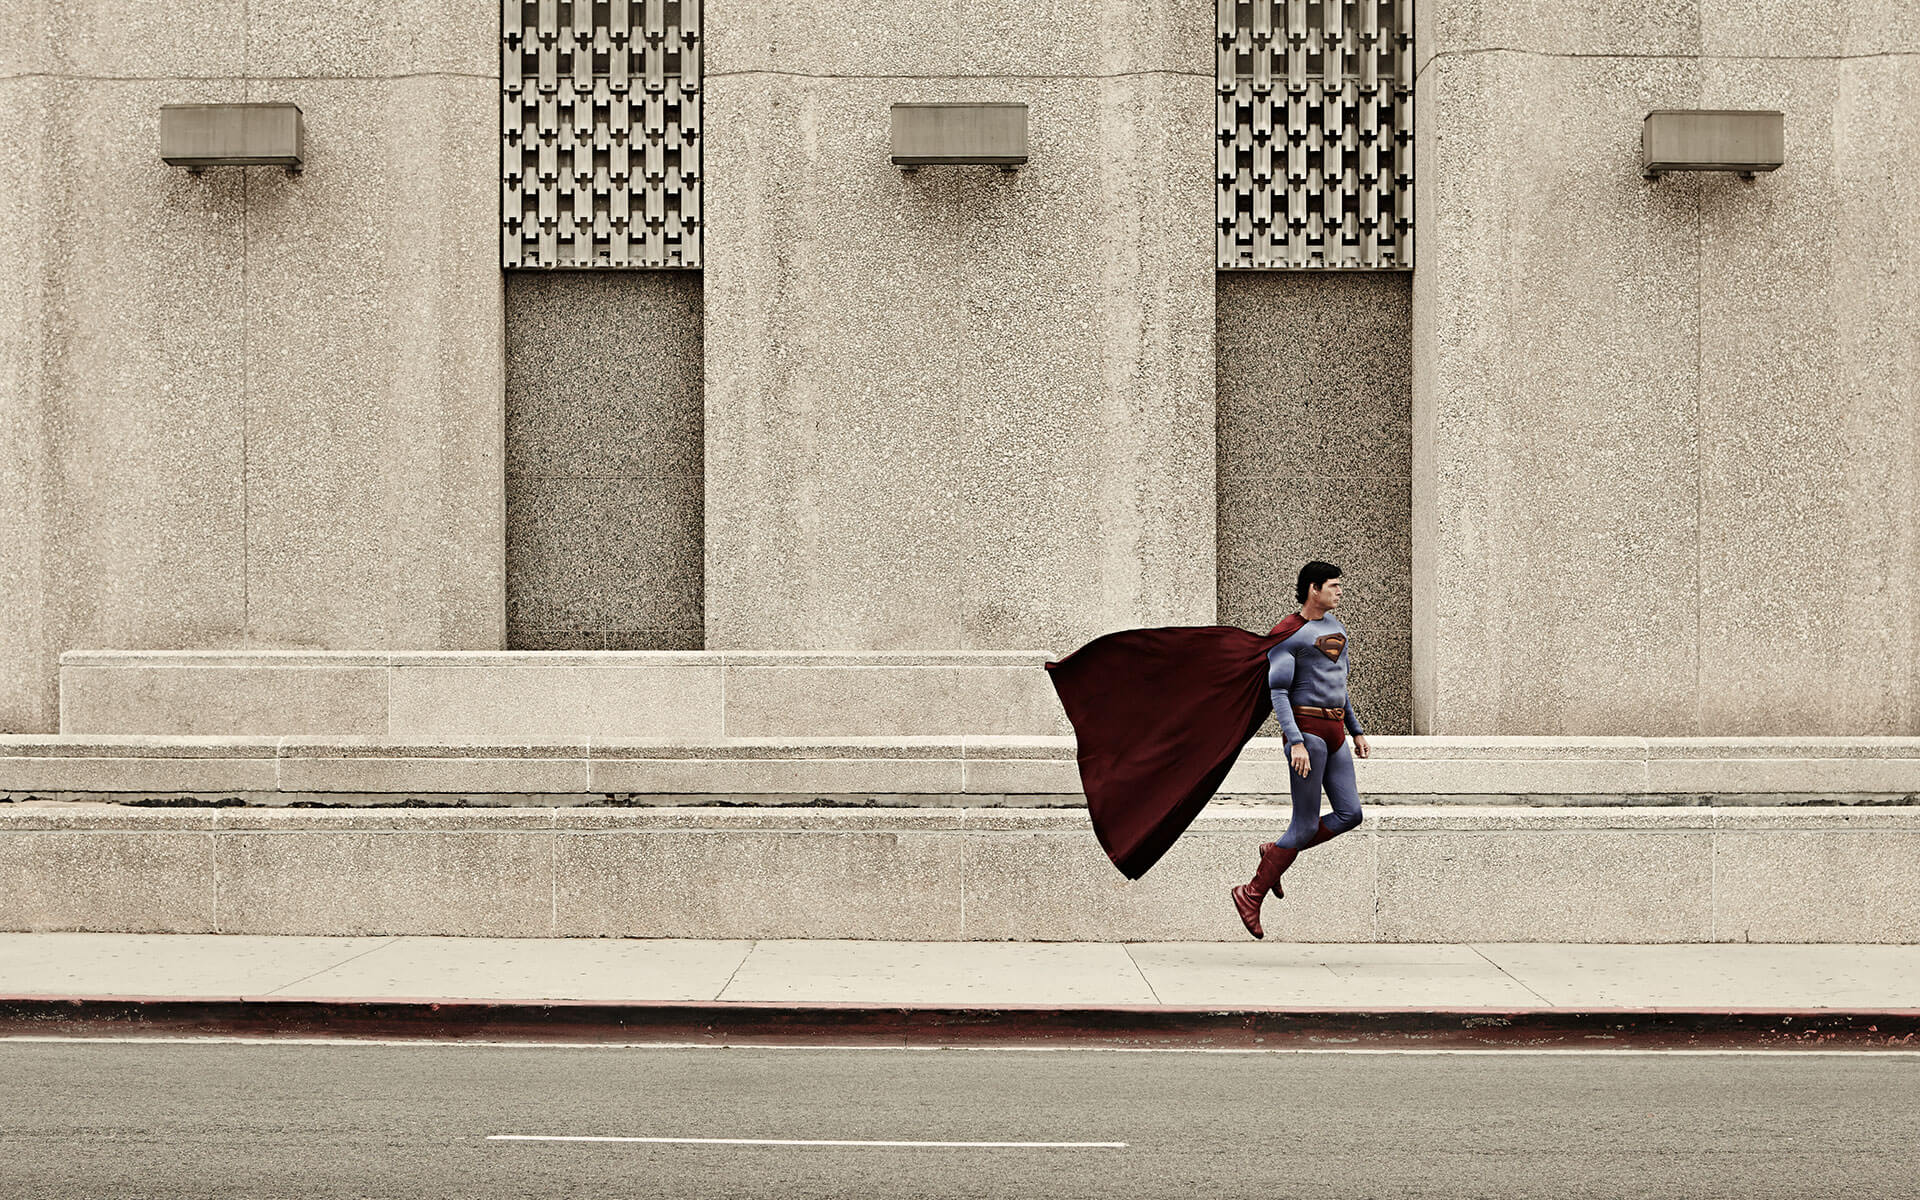 Unified Content, Unified Content Toronto, Aaron Cobb, Superman, superhero, portrait, artistic portrait, marvel, superhero, DC Comics, magic, batman vs. superman, flying, superhero photography, action shot, portrait,